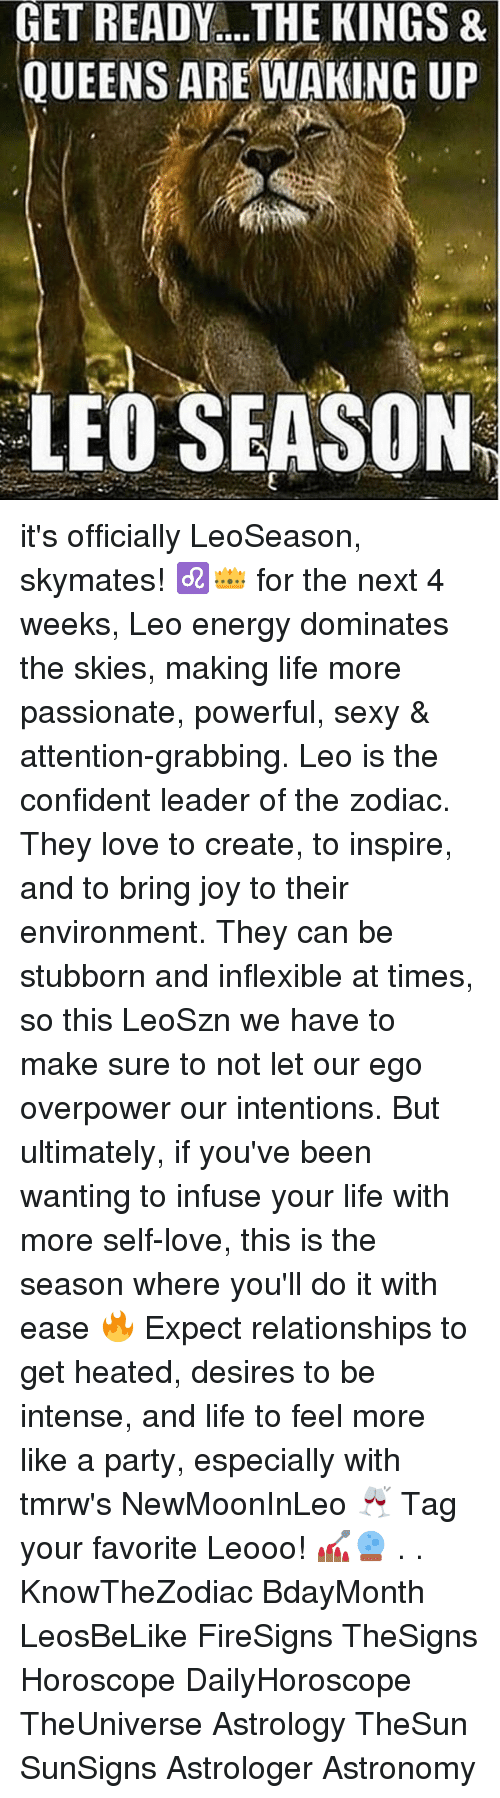 Energy, Life, and Love: GET  READY....THE  KINGS  &  QUEENS AREWAKING UP  LEO SEASON it's officially LeoSeason, skymates! ♌️👑 for the next 4 weeks, Leo energy dominates the skies, making life more passionate, powerful, sexy & attention-grabbing. Leo is the confident leader of the zodiac. They love to create, to inspire, and to bring joy to their environment. They can be stubborn and inflexible at times, so this LeoSzn we have to make sure to not let our ego overpower our intentions. But ultimately, if you've been wanting to infuse your life with more self-love, this is the season where you'll do it with ease 🔥 Expect relationships to get heated, desires to be intense, and life to feel more like a party, especially with tmrw's NewMoonInLeo 🥂 Tag your favorite Leooo! 💅🏾🔮 . . KnowTheZodiac BdayMonth LeosBeLike FireSigns TheSigns Horoscope DailyHoroscope TheUniverse Astrology TheSun SunSigns Astrologer Astronomy